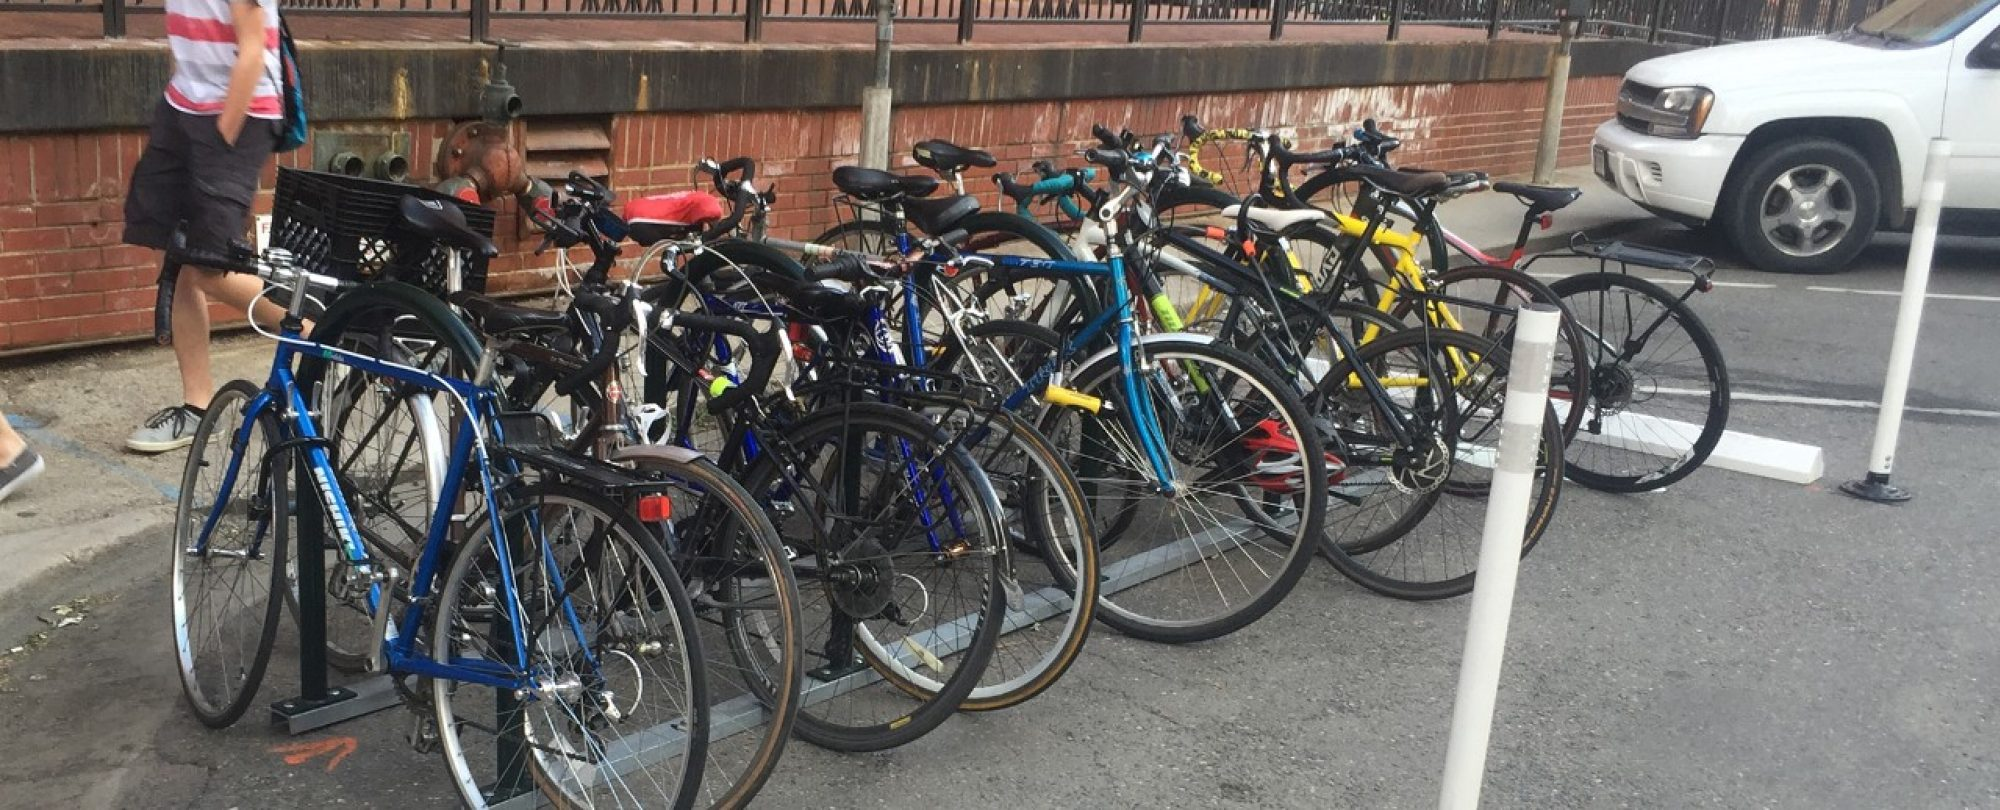 bikes in corral next to vehicle parking spaces